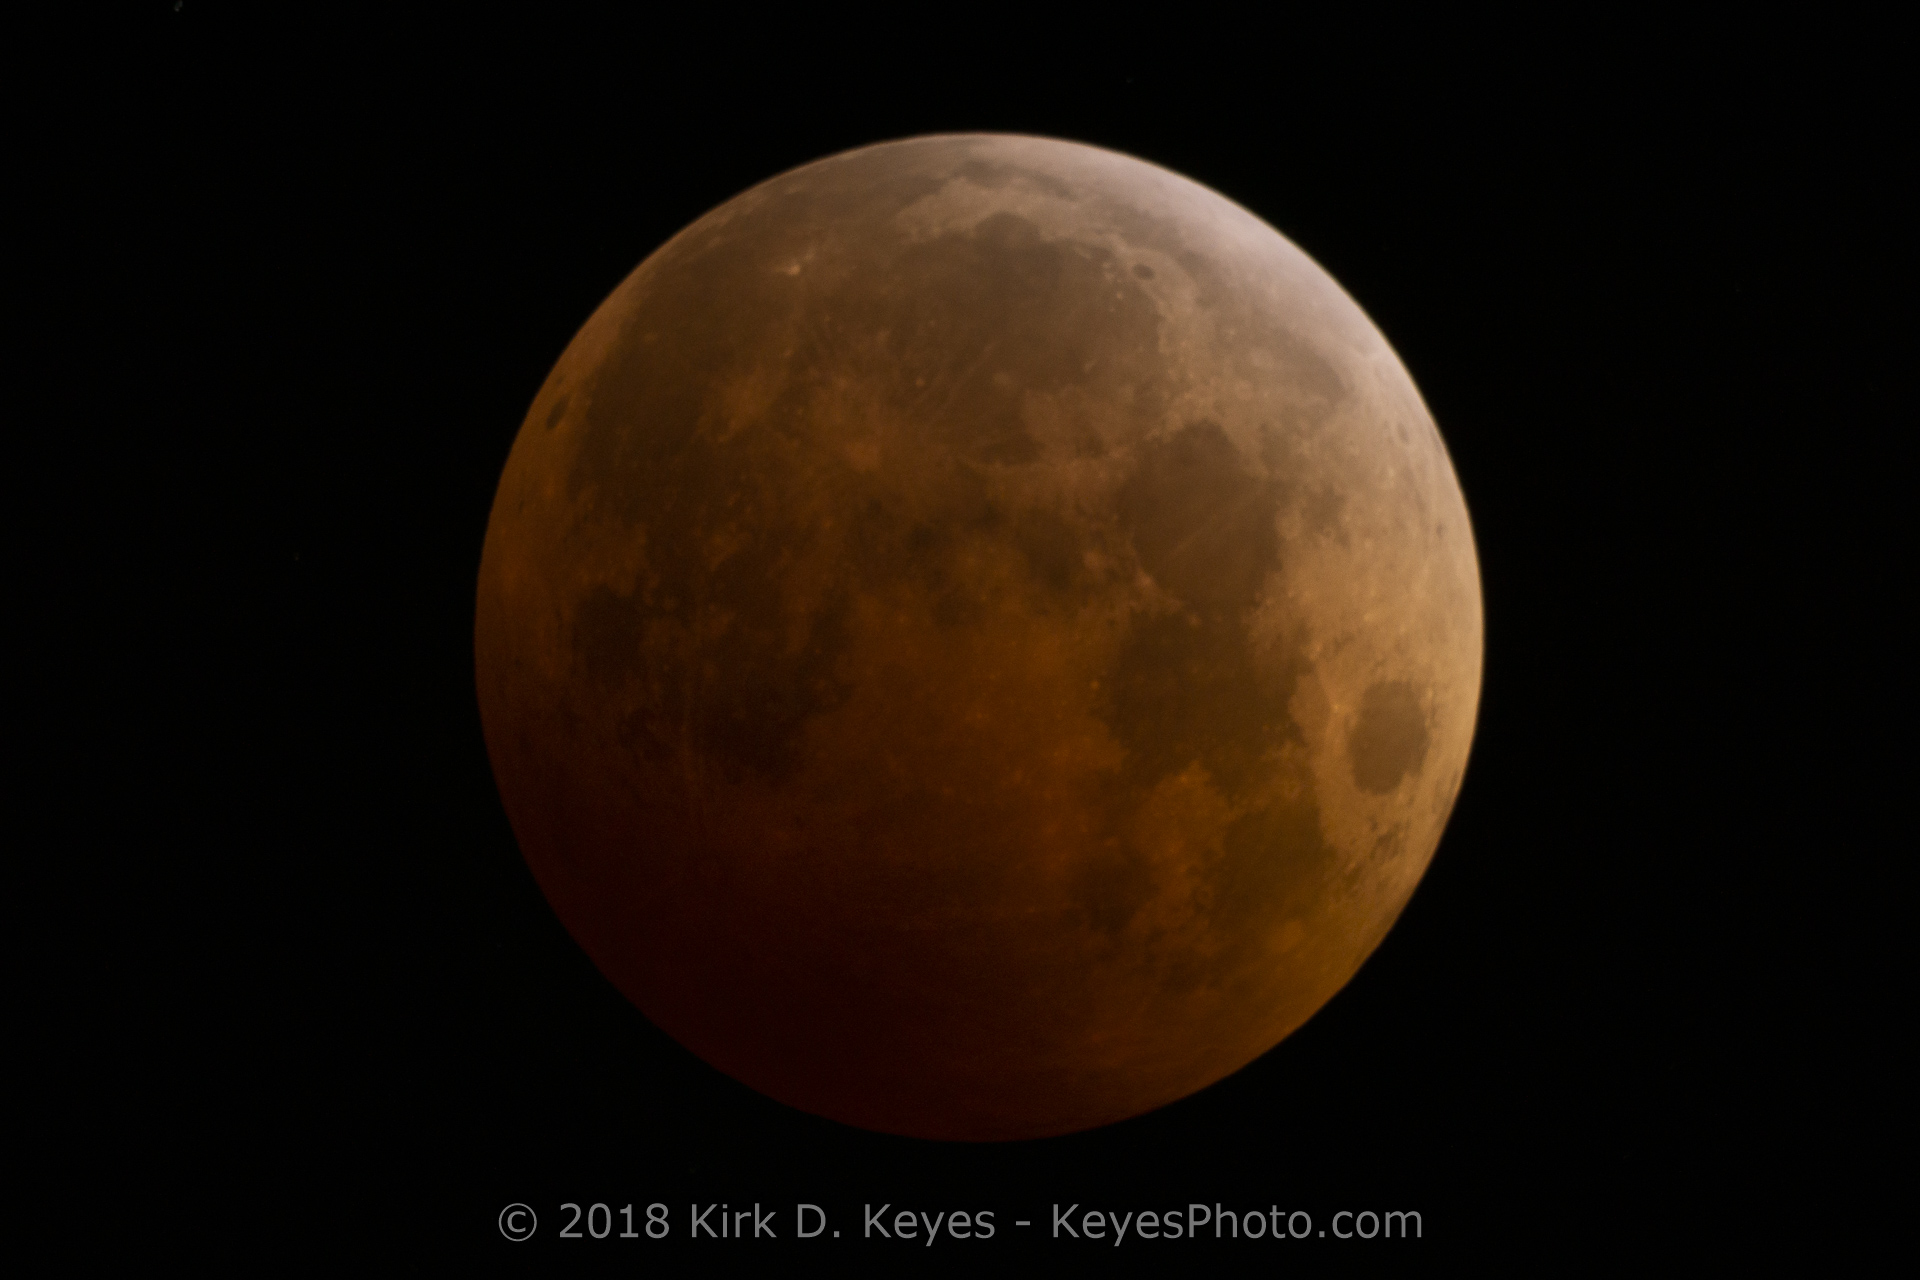 """Astro-Landscape Photography Notes January 2019 - Total Lunar Eclipse on 8 October 2014. Taken with a Sony a6000 and a Meade LX-200 8"""" telescope with a 0.63 Meade Focal Reducer for an effective focal length of 1260mm. Exposure was f/6.3, ISO 800, 1.6 seconds."""